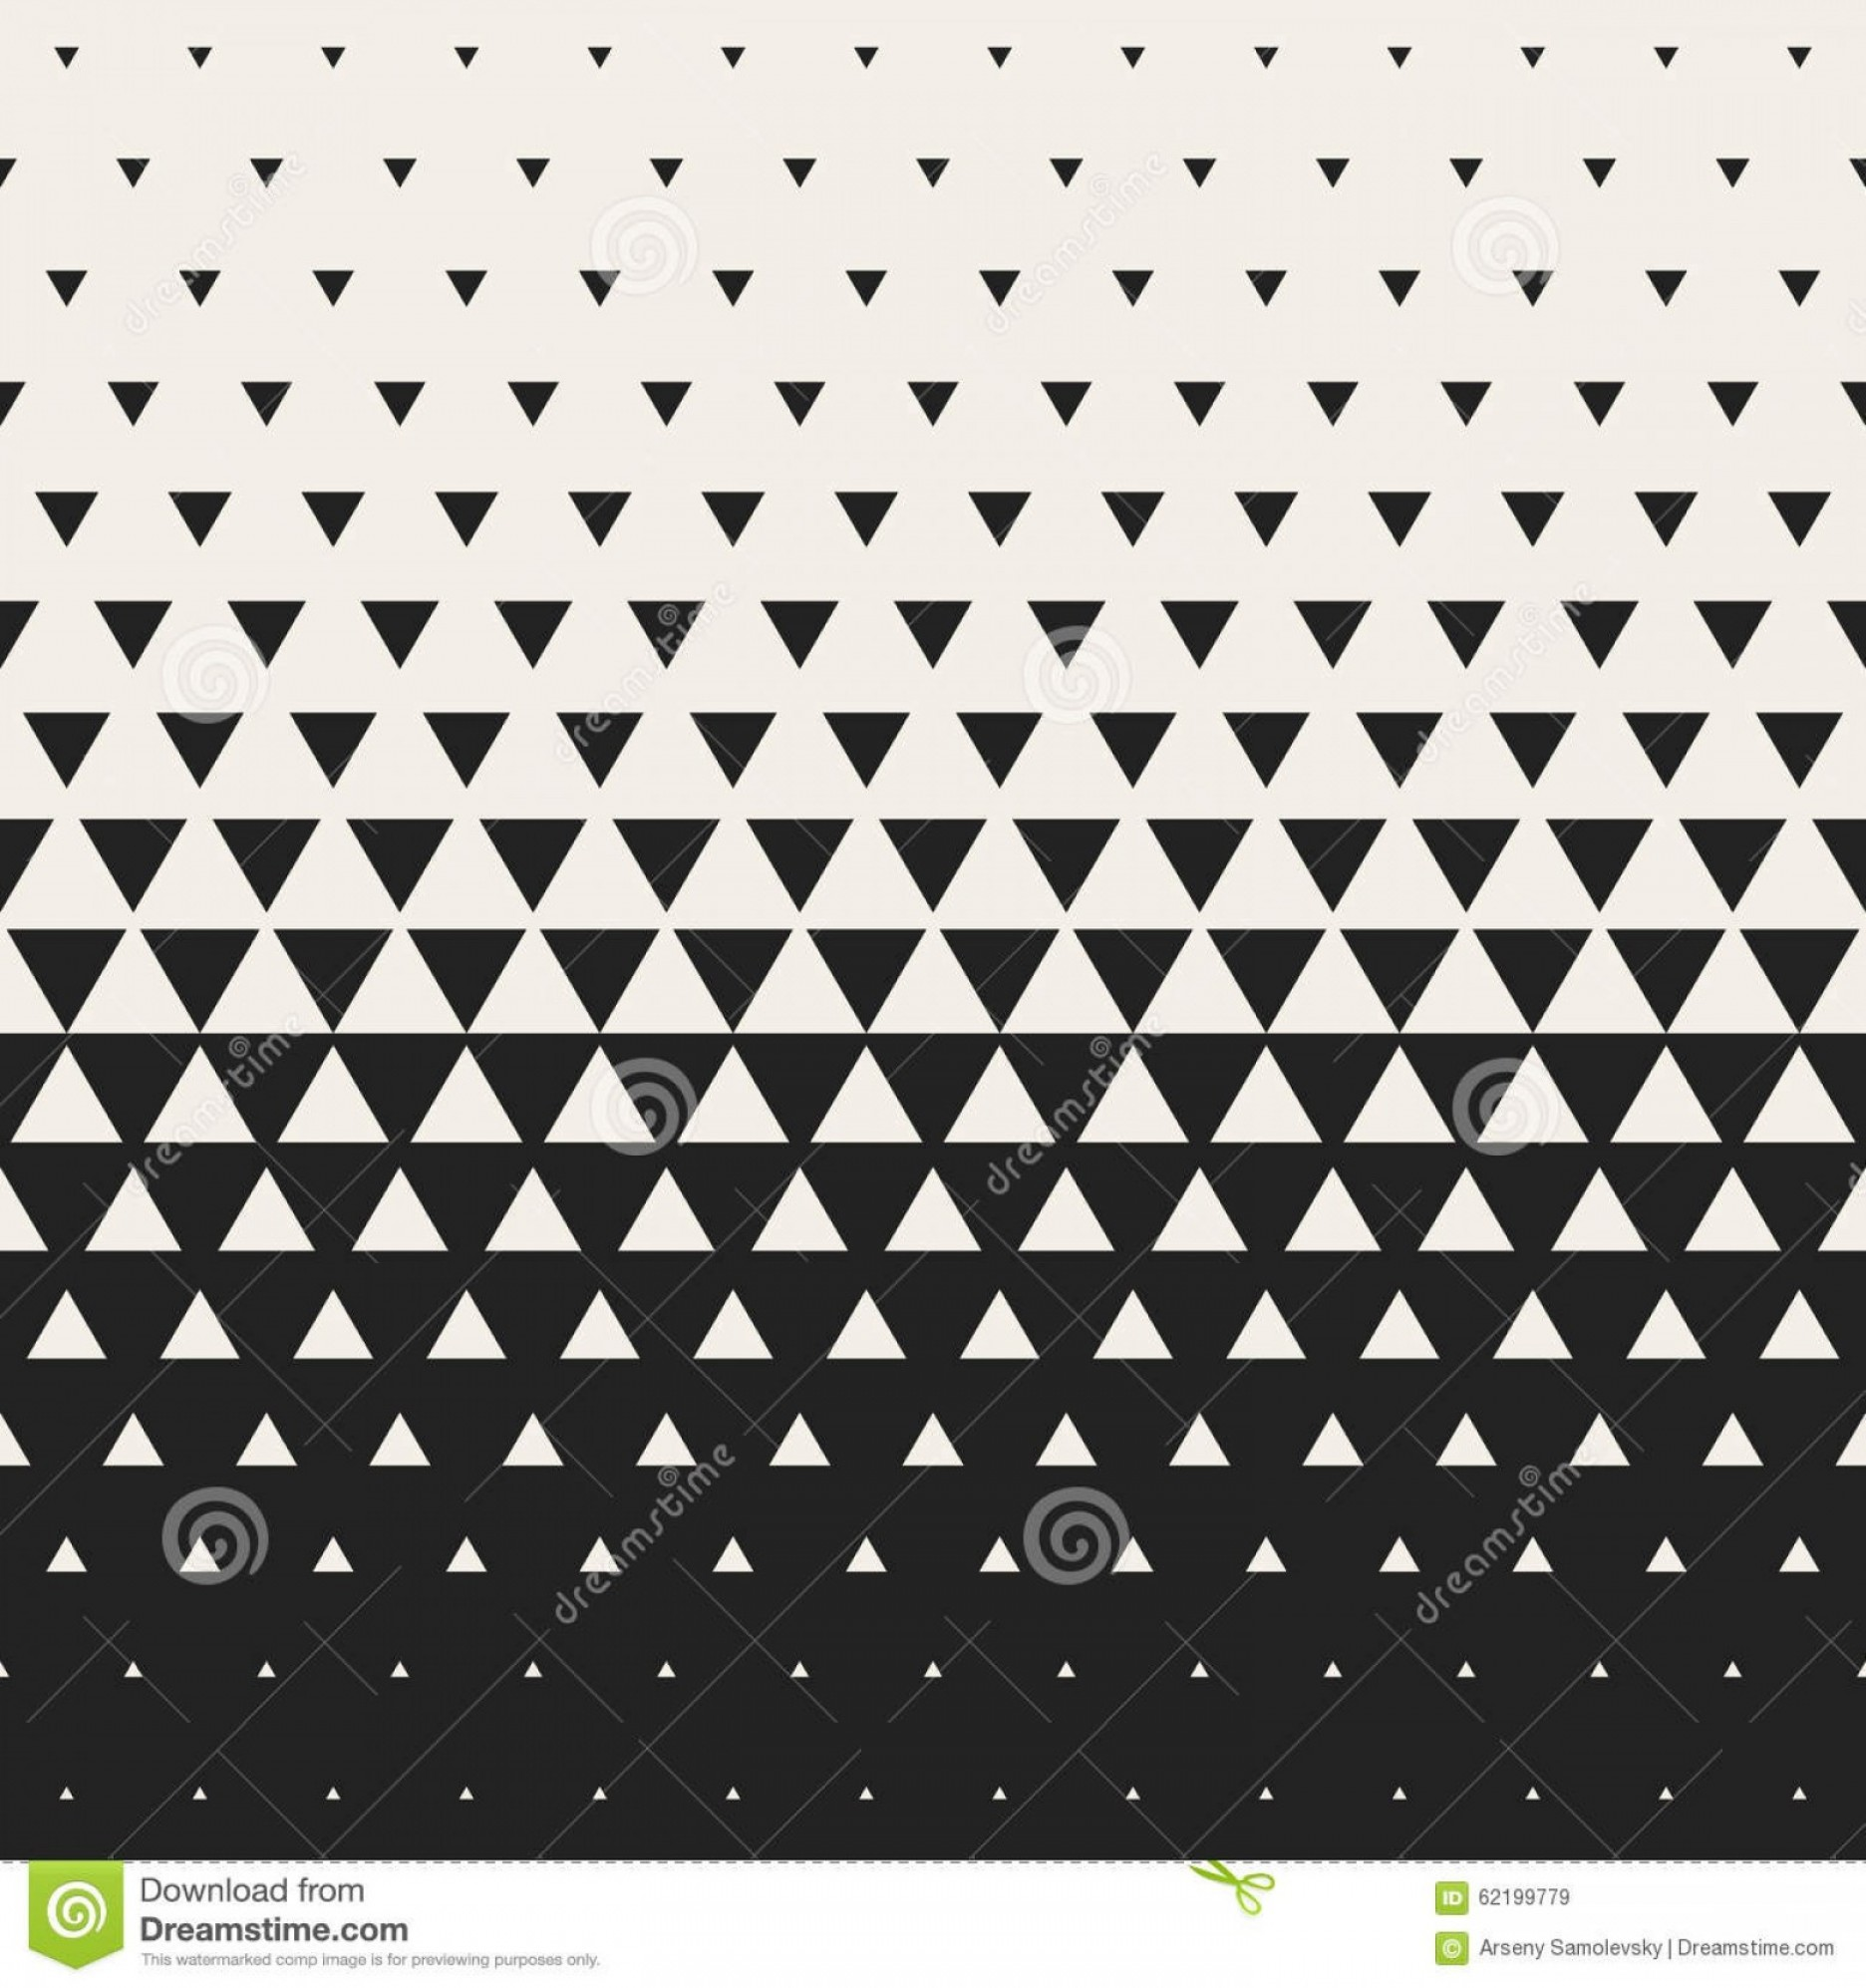 Elegant Patterns Vector Png: Stock Illustration Vector Seamless Black White Morphing Triangle Halftone Grid Gradient Pattern Geometric Background Abstract Image